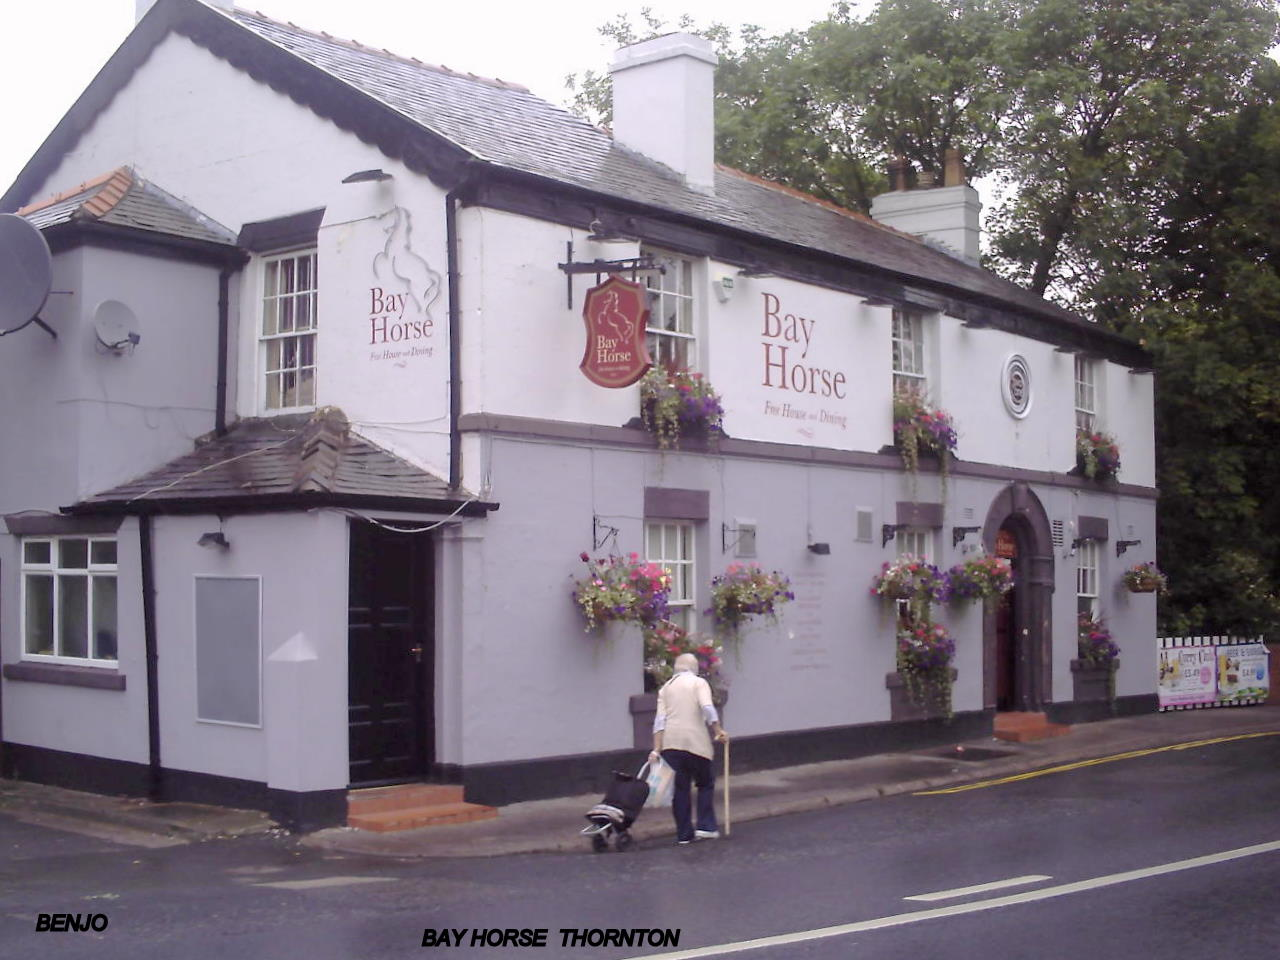 Bay Horse Hotel Thornton Cleveleys Pub Opening Times And Reviews